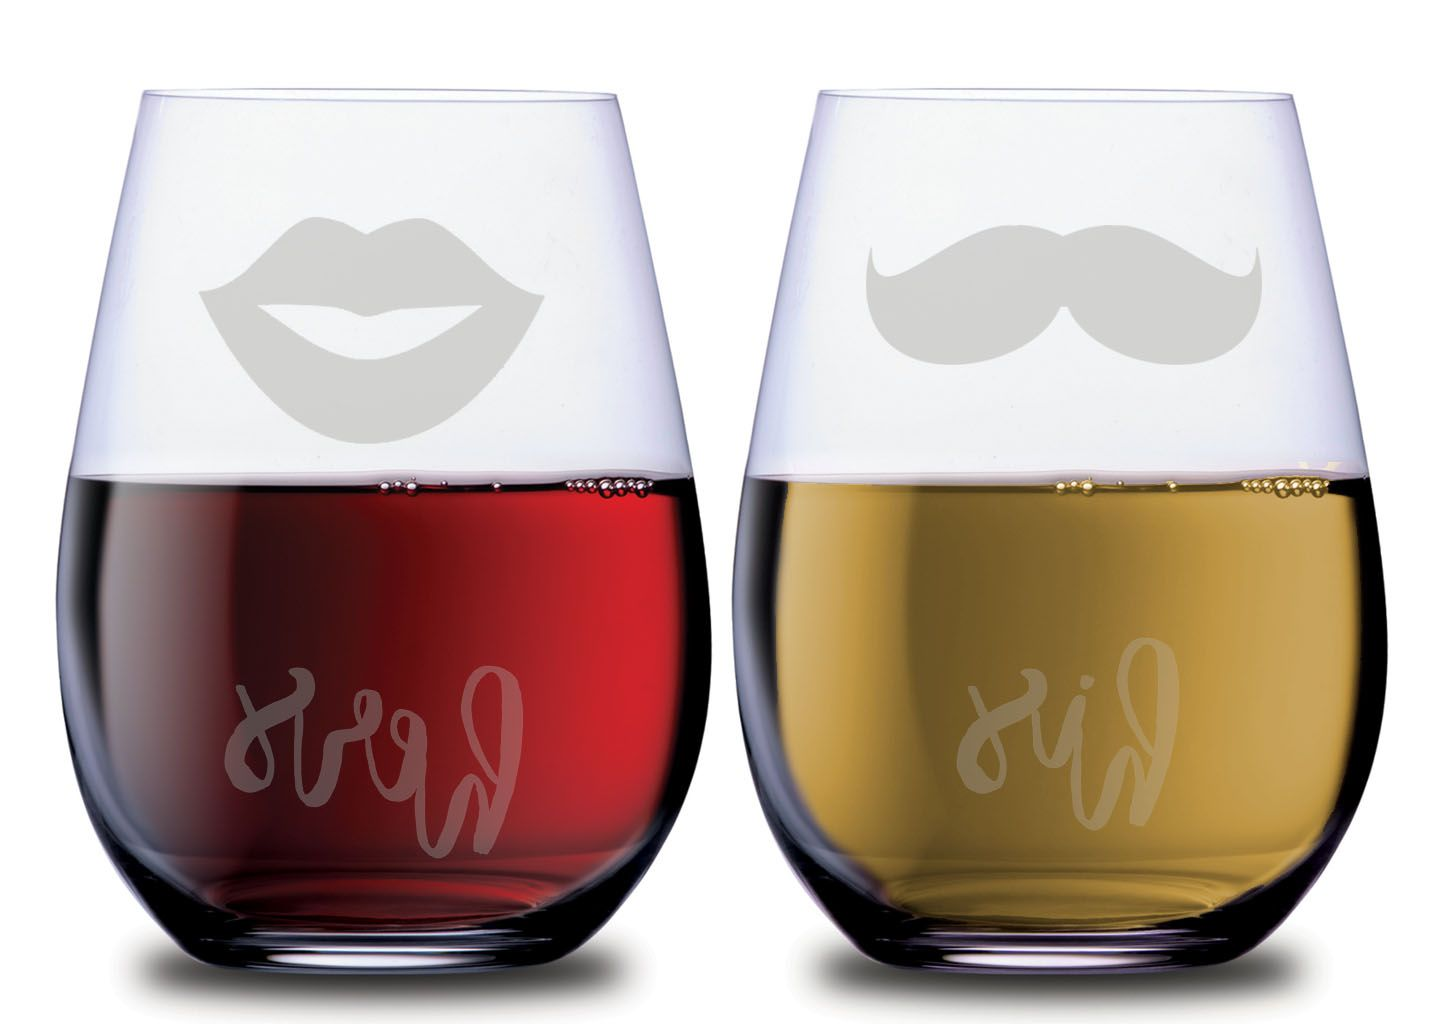 His And Hers Mustache Lips Stemless Wineglass Set Of 2 Glasses In 2020 Couples Wine Glasses Wine Glass Gifts For Wine Lovers